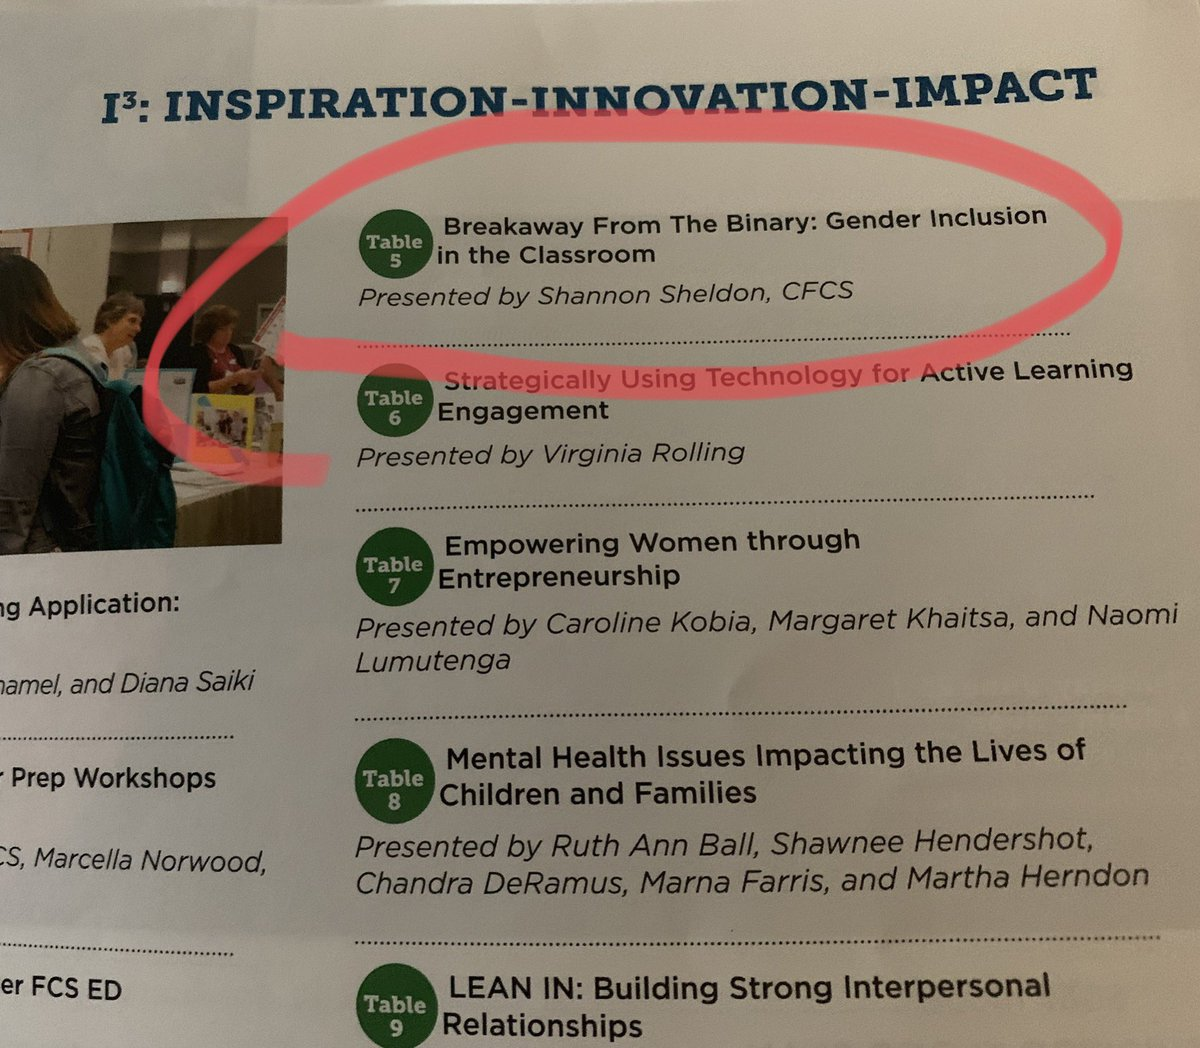 Excited for #careerteched FCS instructor @MsSheldon702 to share with us at #nacte19 next month!